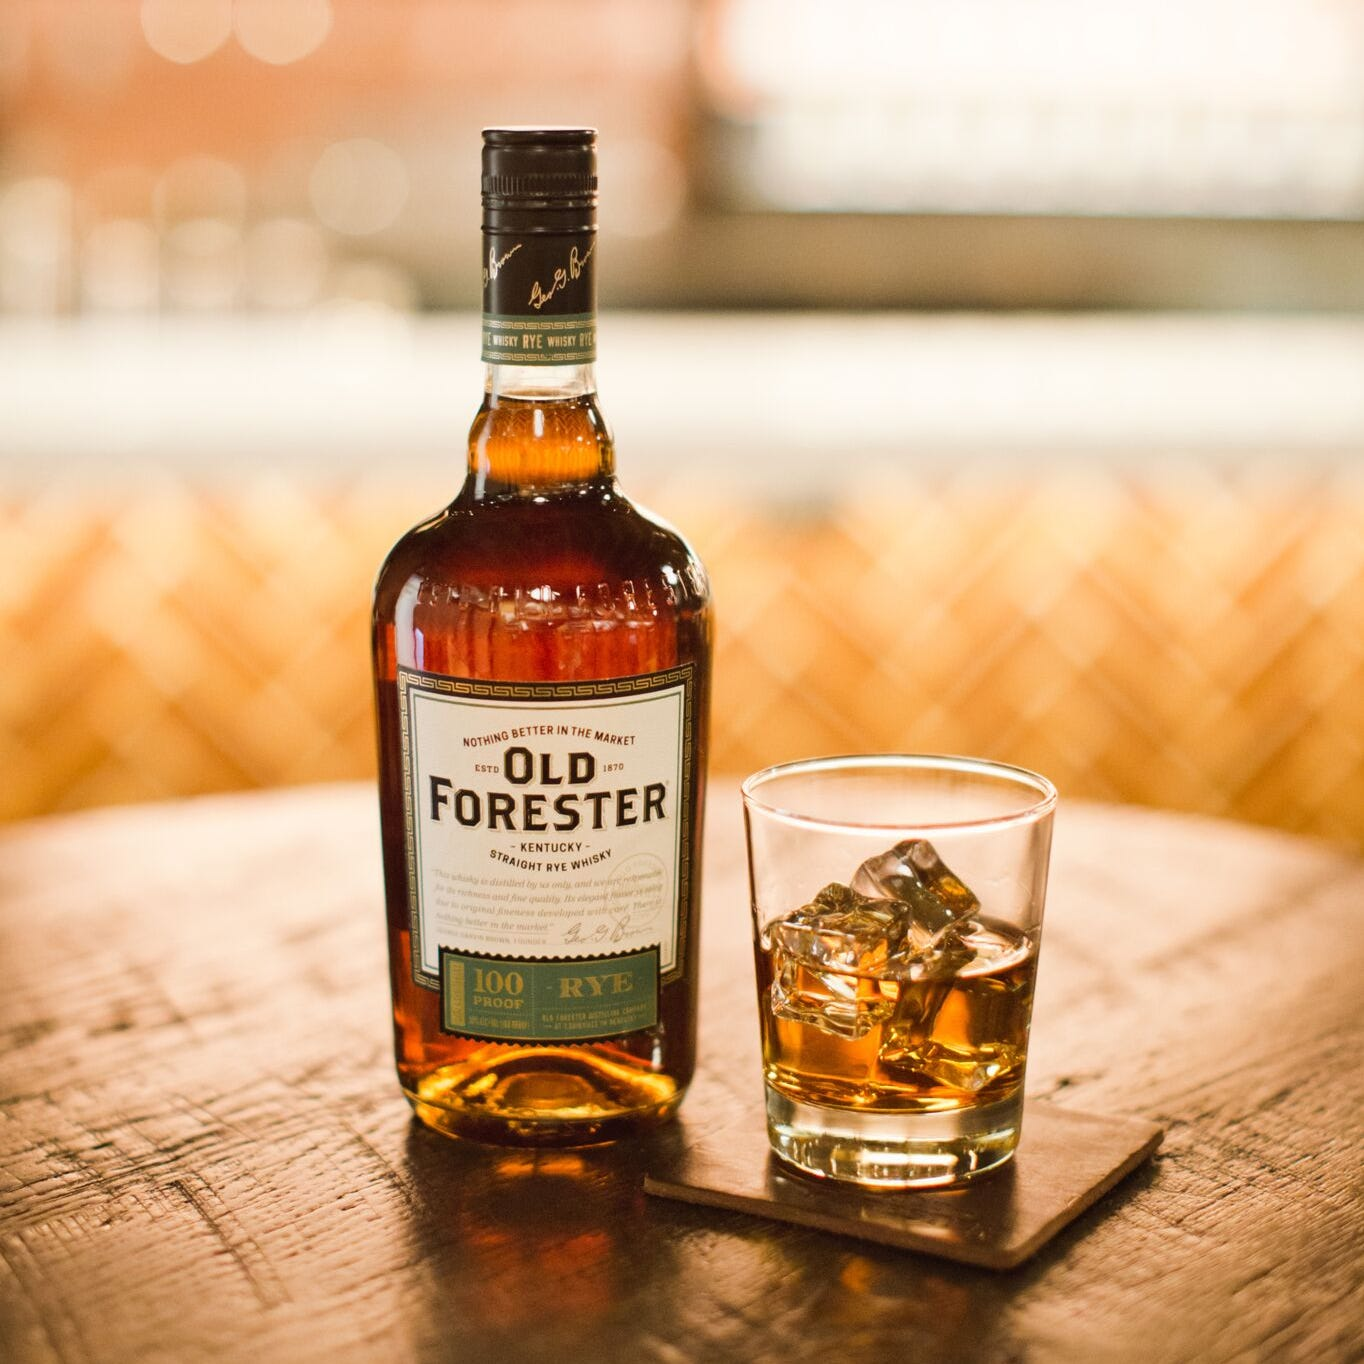 Old Forester will make new rye whiskey for the first time in 150 years